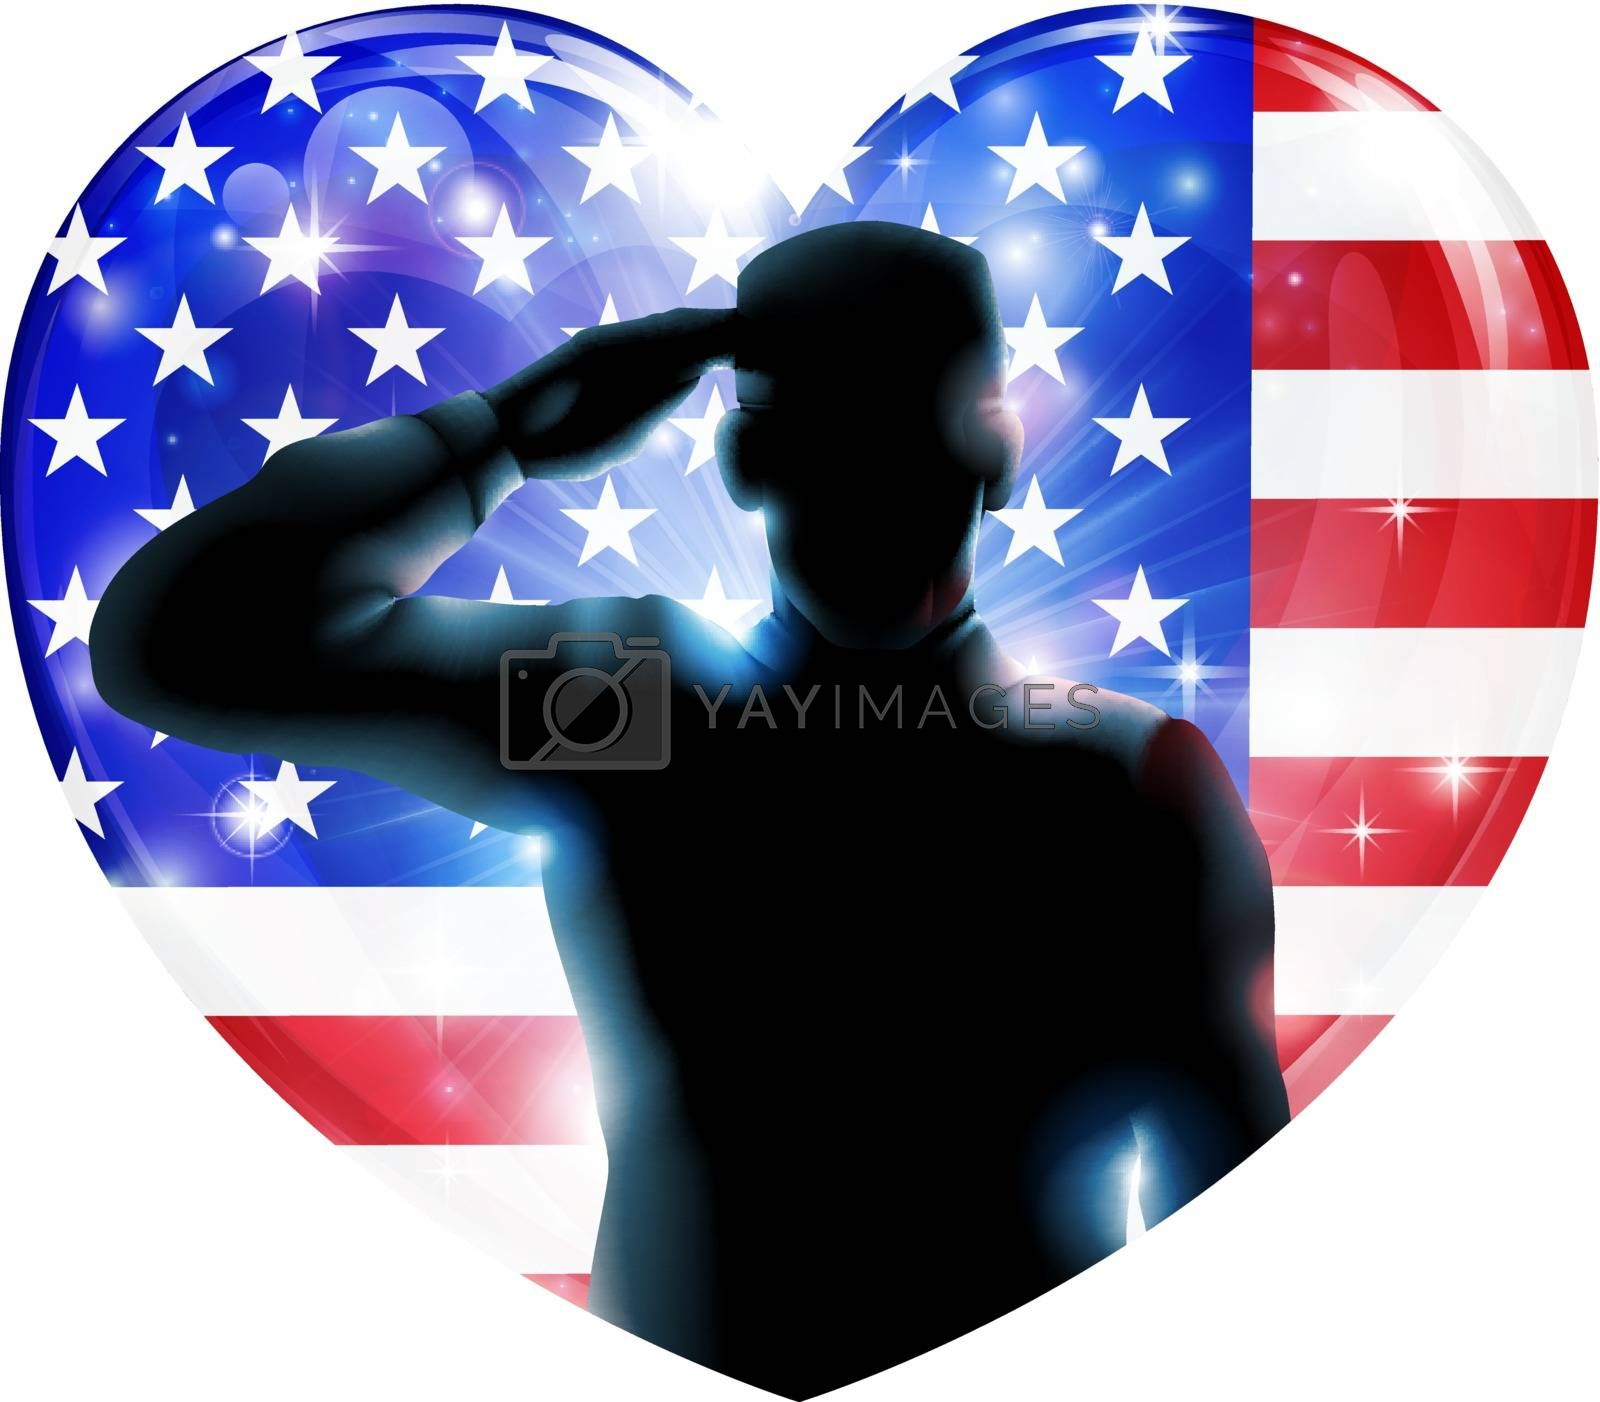 Illustration for 4th July Independence Day or veterans day of a soldier saluting in front of American flag shaped as a heart